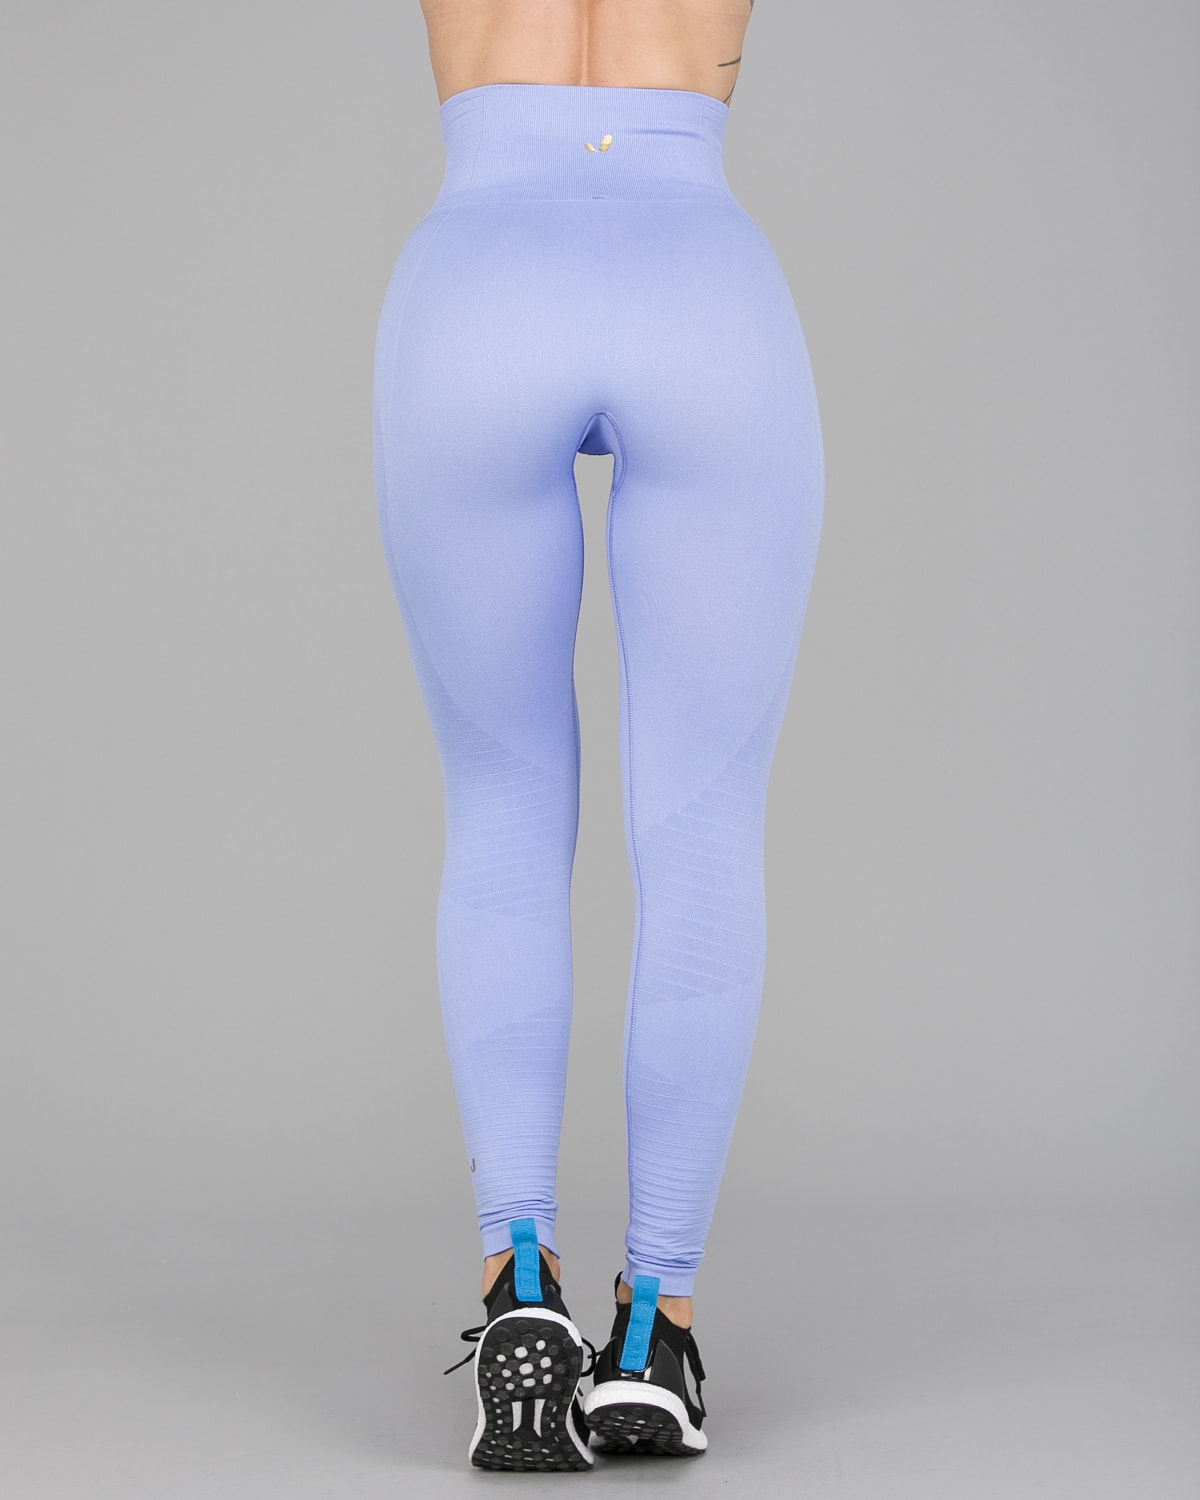 Jerf Gela 2.0 Tights Blue Pastel13